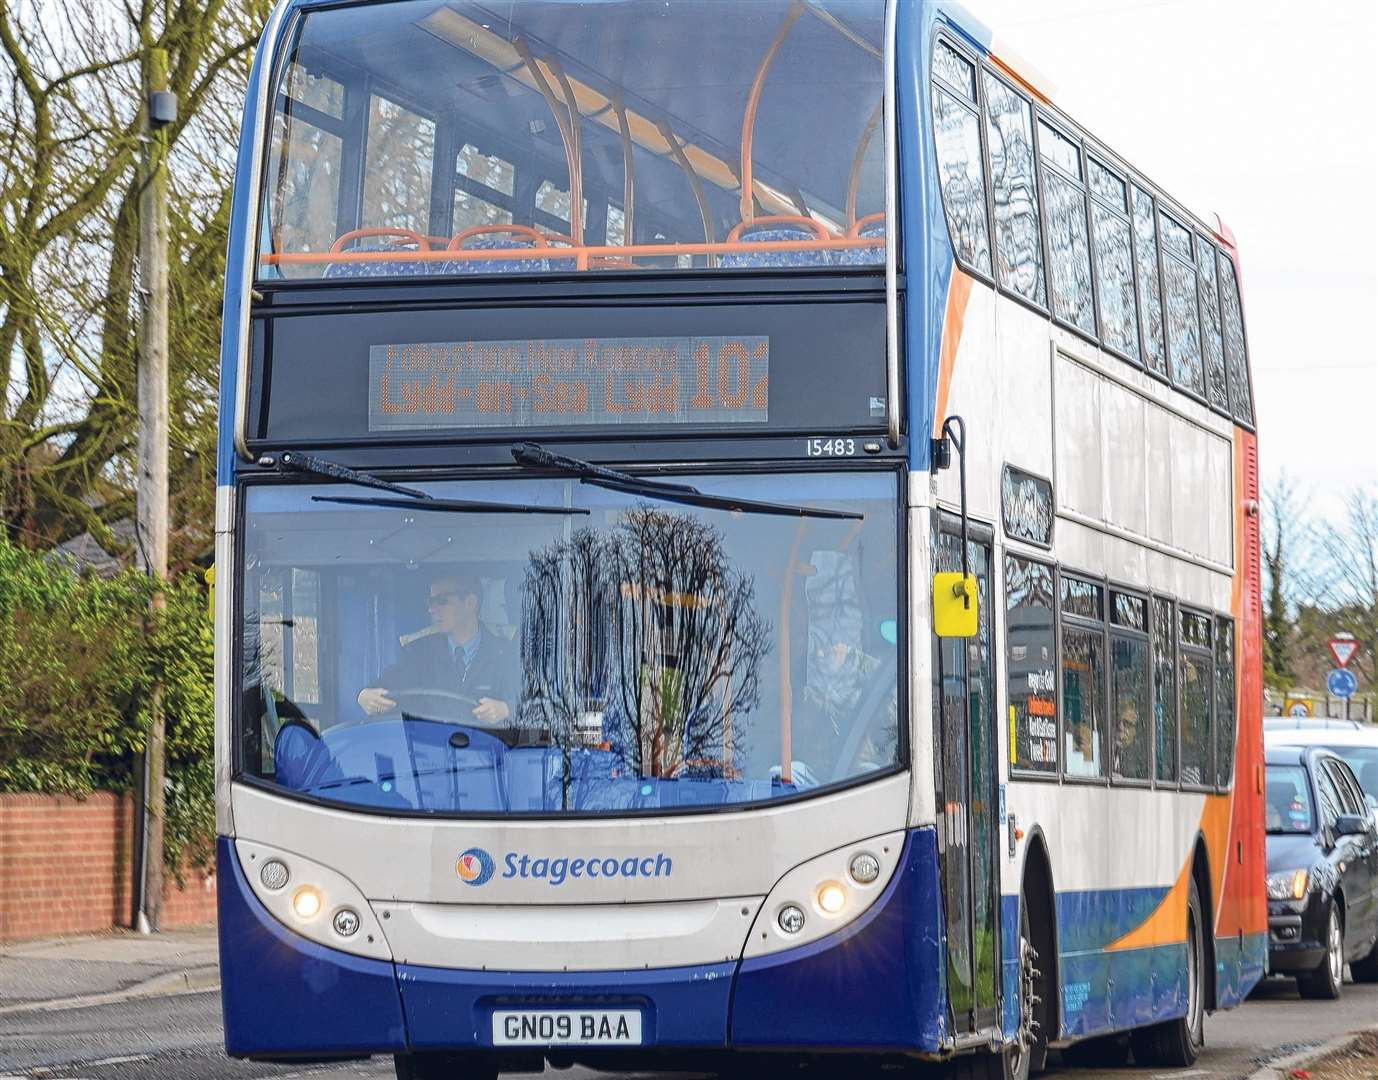 Stagecoach is looking at different fare options for children